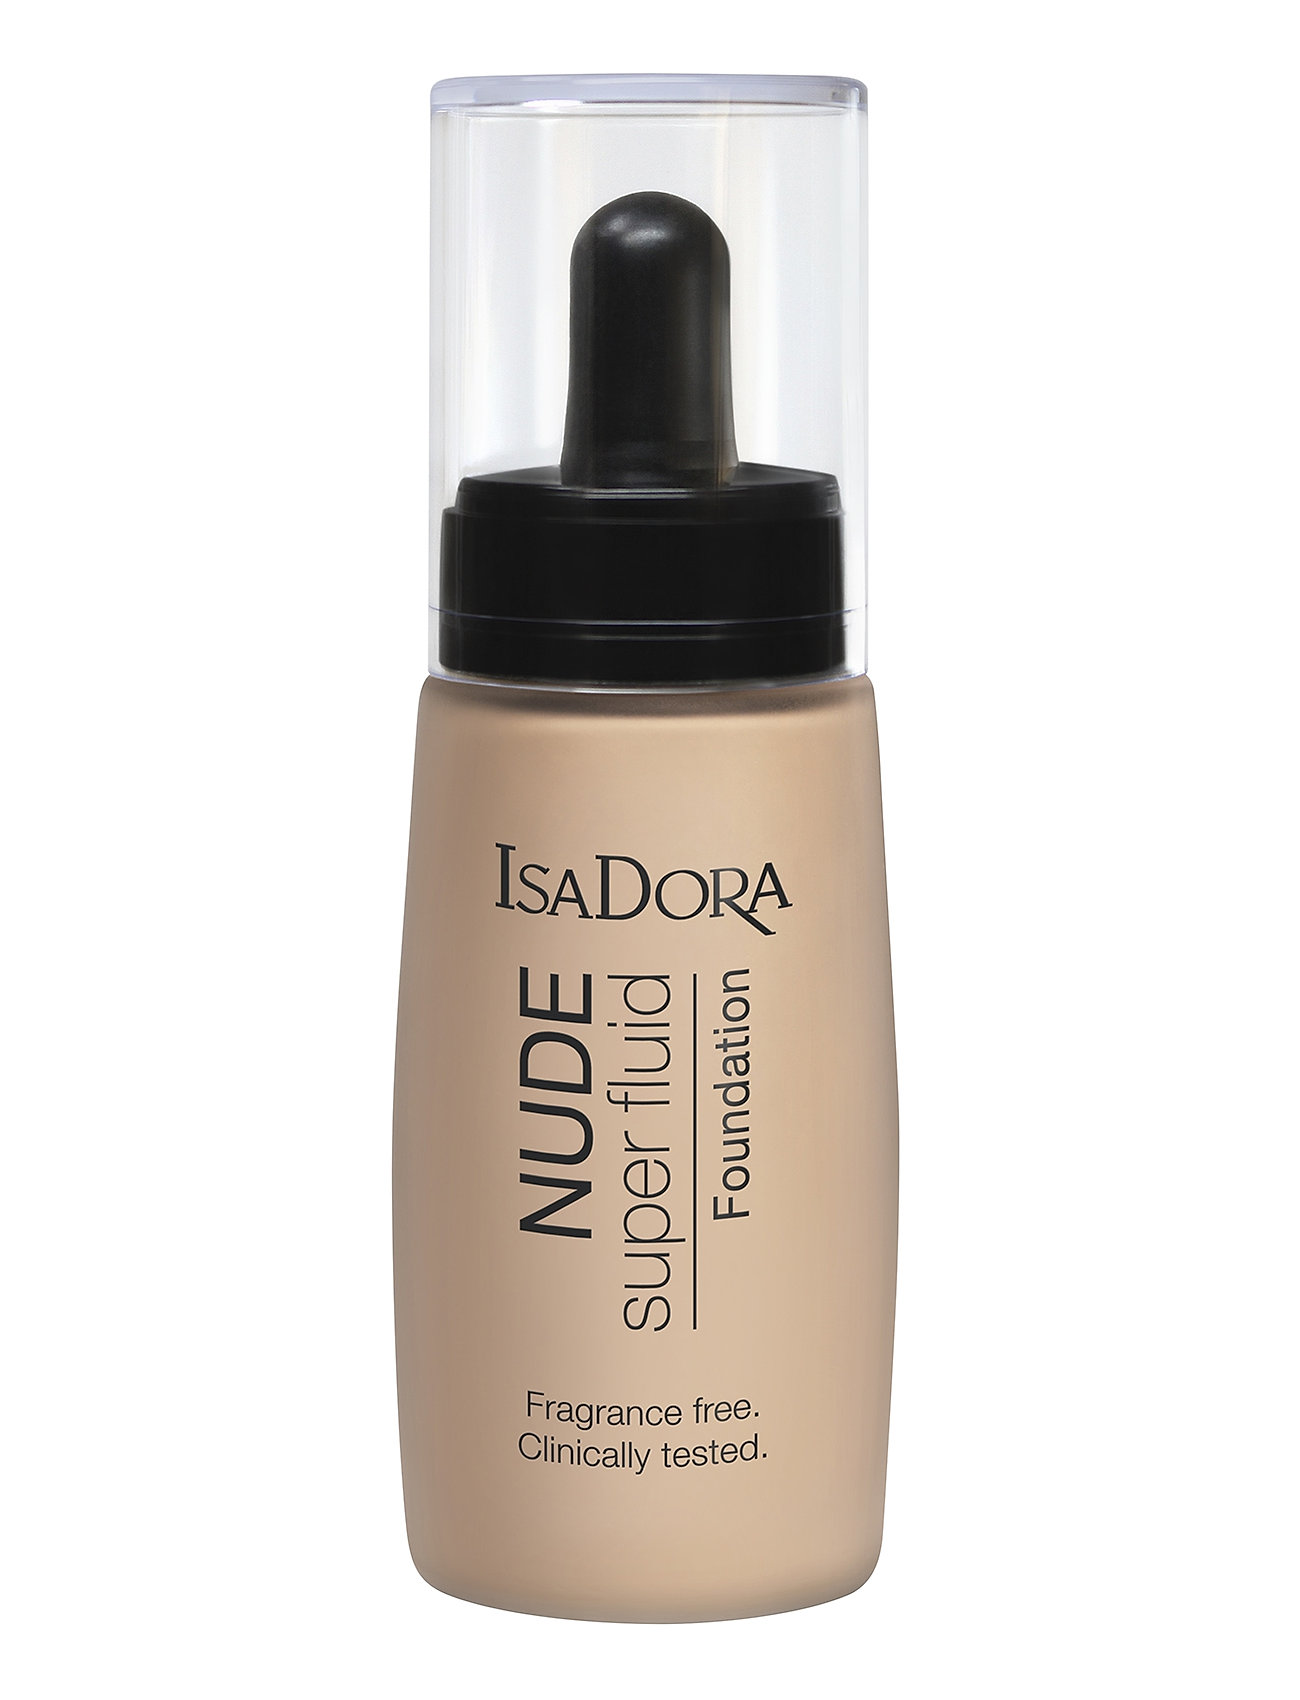 Image of Nude Super Fluid Fundation Nude Beige Foundation Makeup Isadora (3436044053)